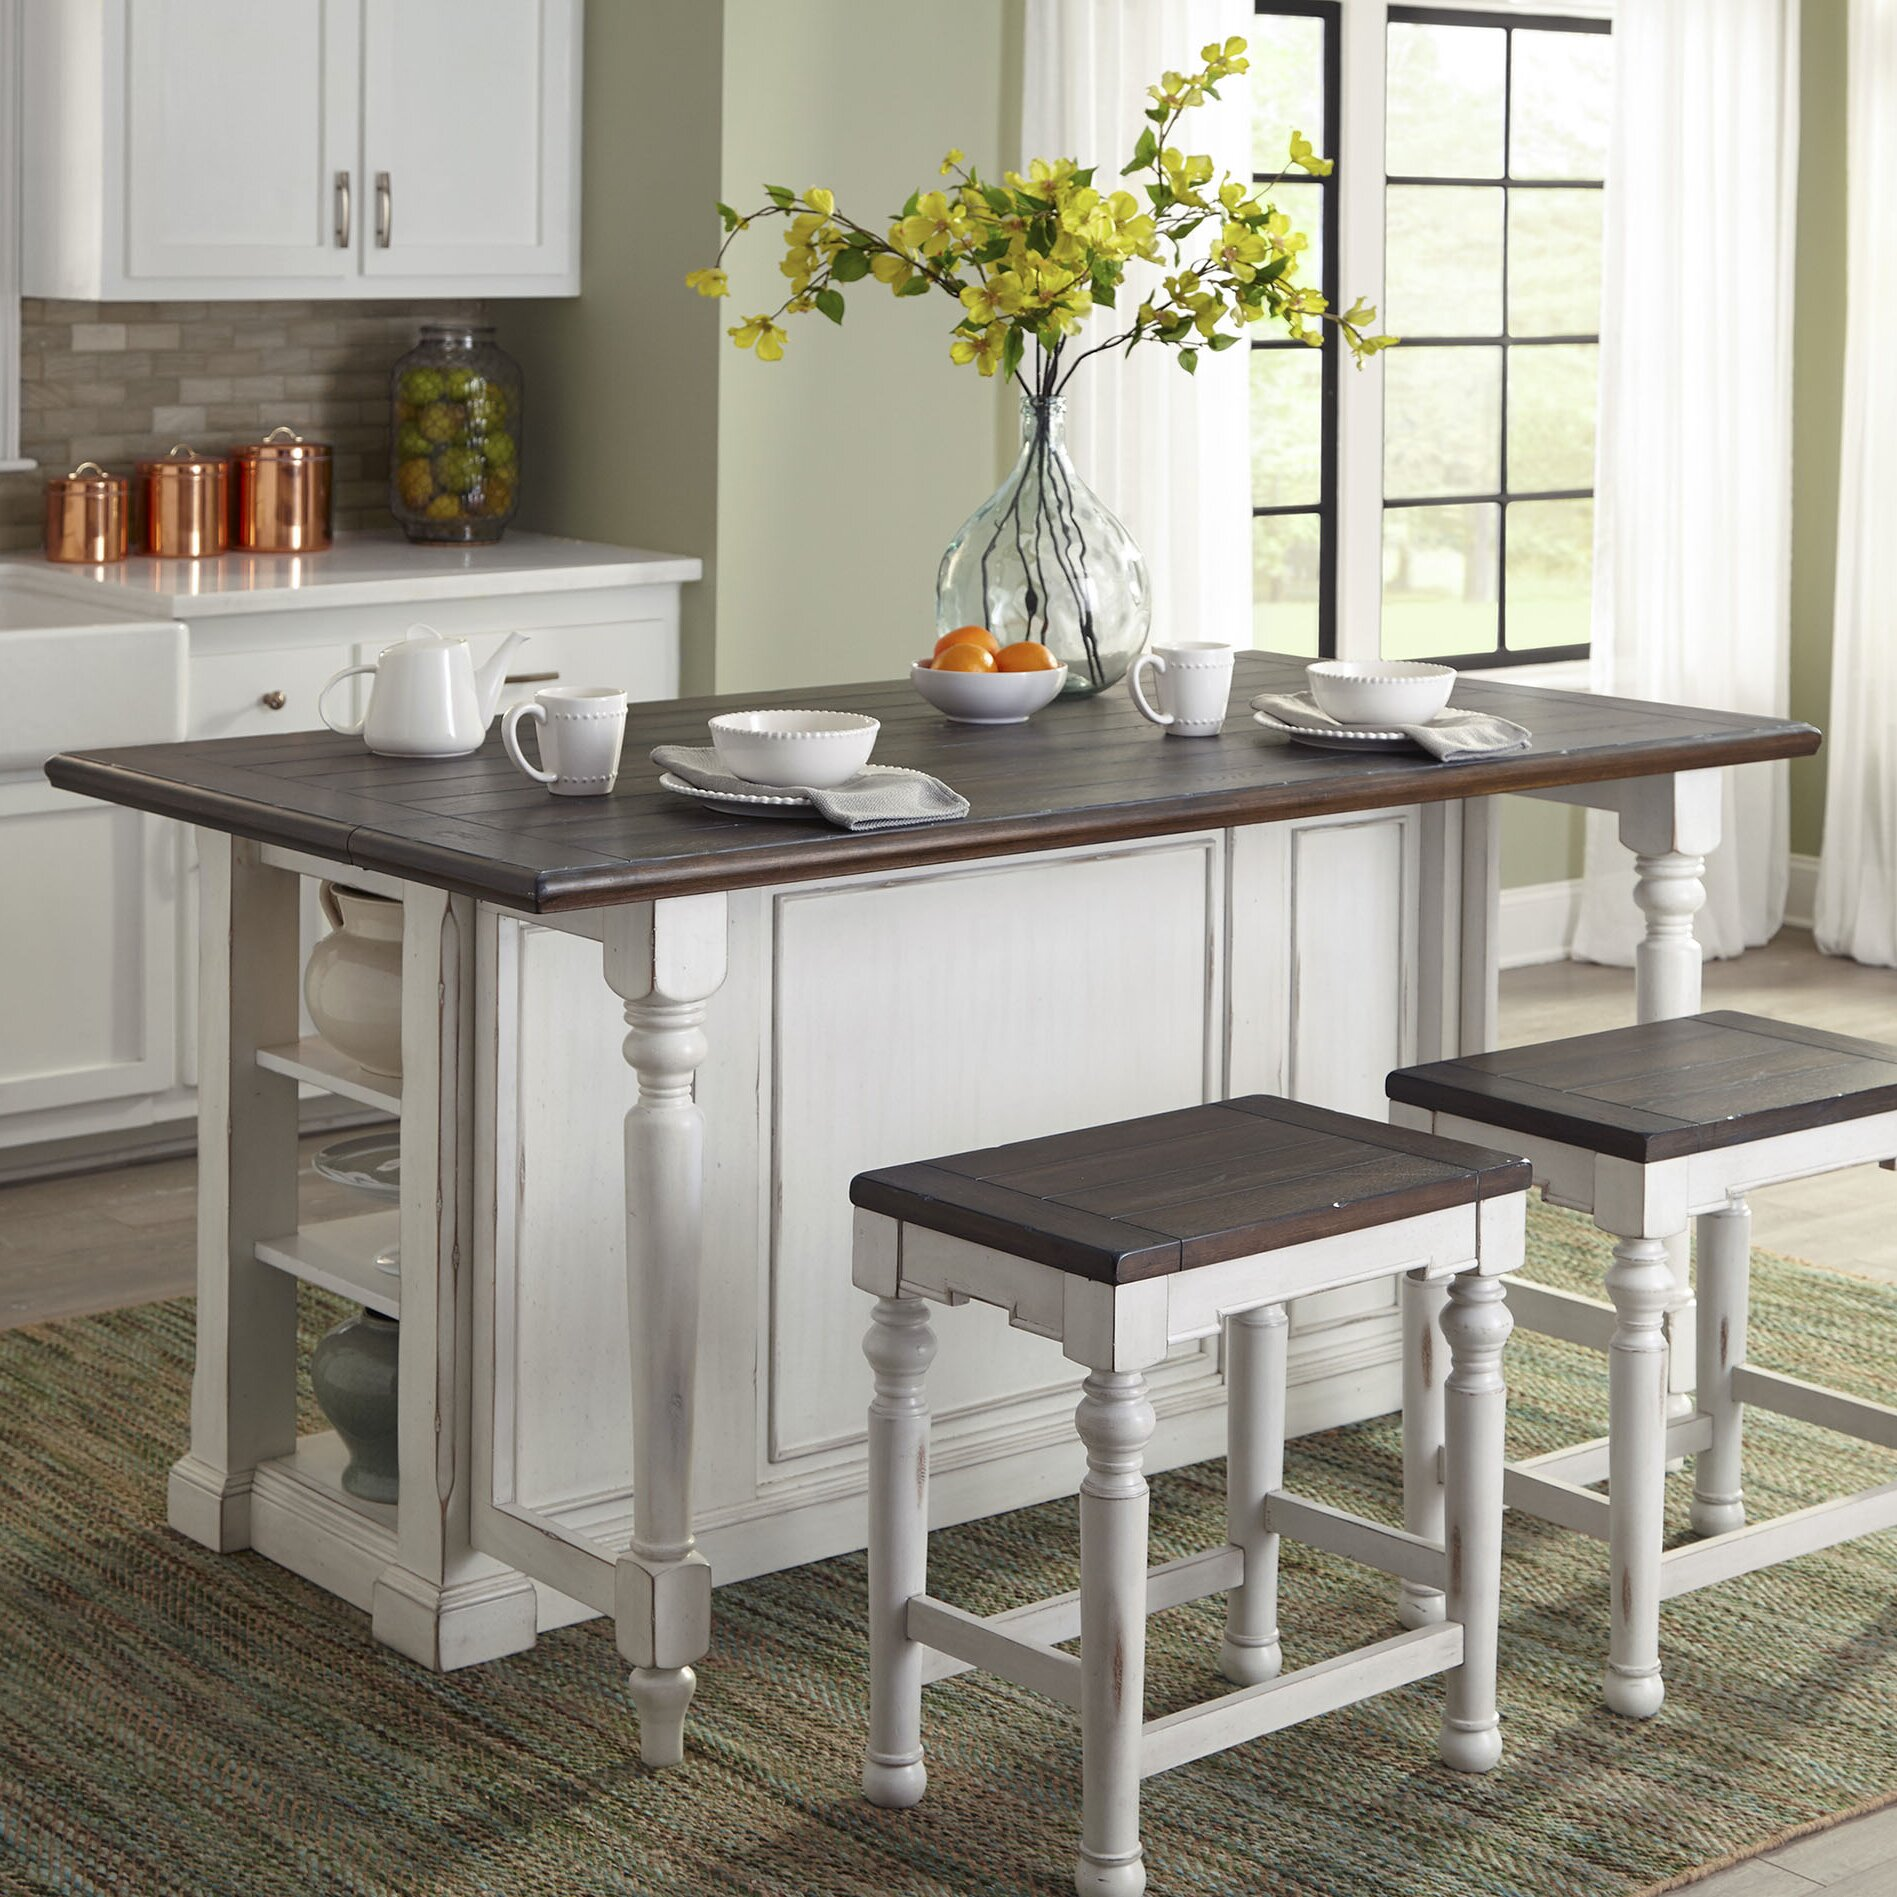 kitchen islands wood august grove kitchen island with wood top reviews wayfair ca 906